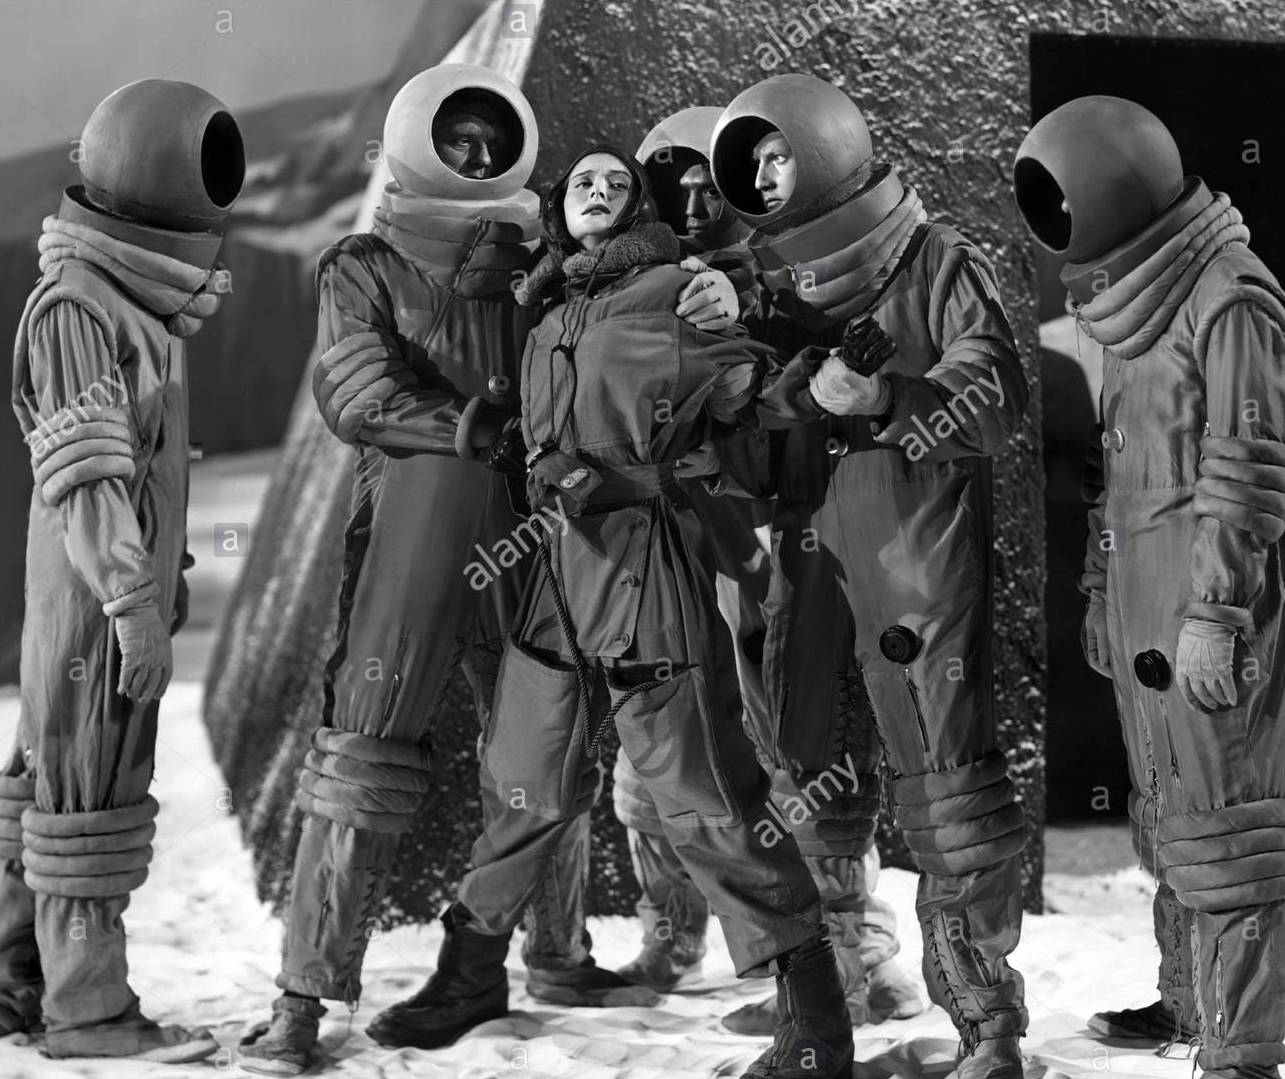 OSA MASSEN Character(s): Dr. Lisa Van Horn Film 'ROCKETSHIP X-M' (1950) Directed By KURT NEUMANN 26 May 1950 CTW88028 Allstar/Cinetext/LIPPERT PICTURES **WARNING** This photograph can only be reproduced by publications in conjunction with the promotion of the above film. For Editorial Use Only.